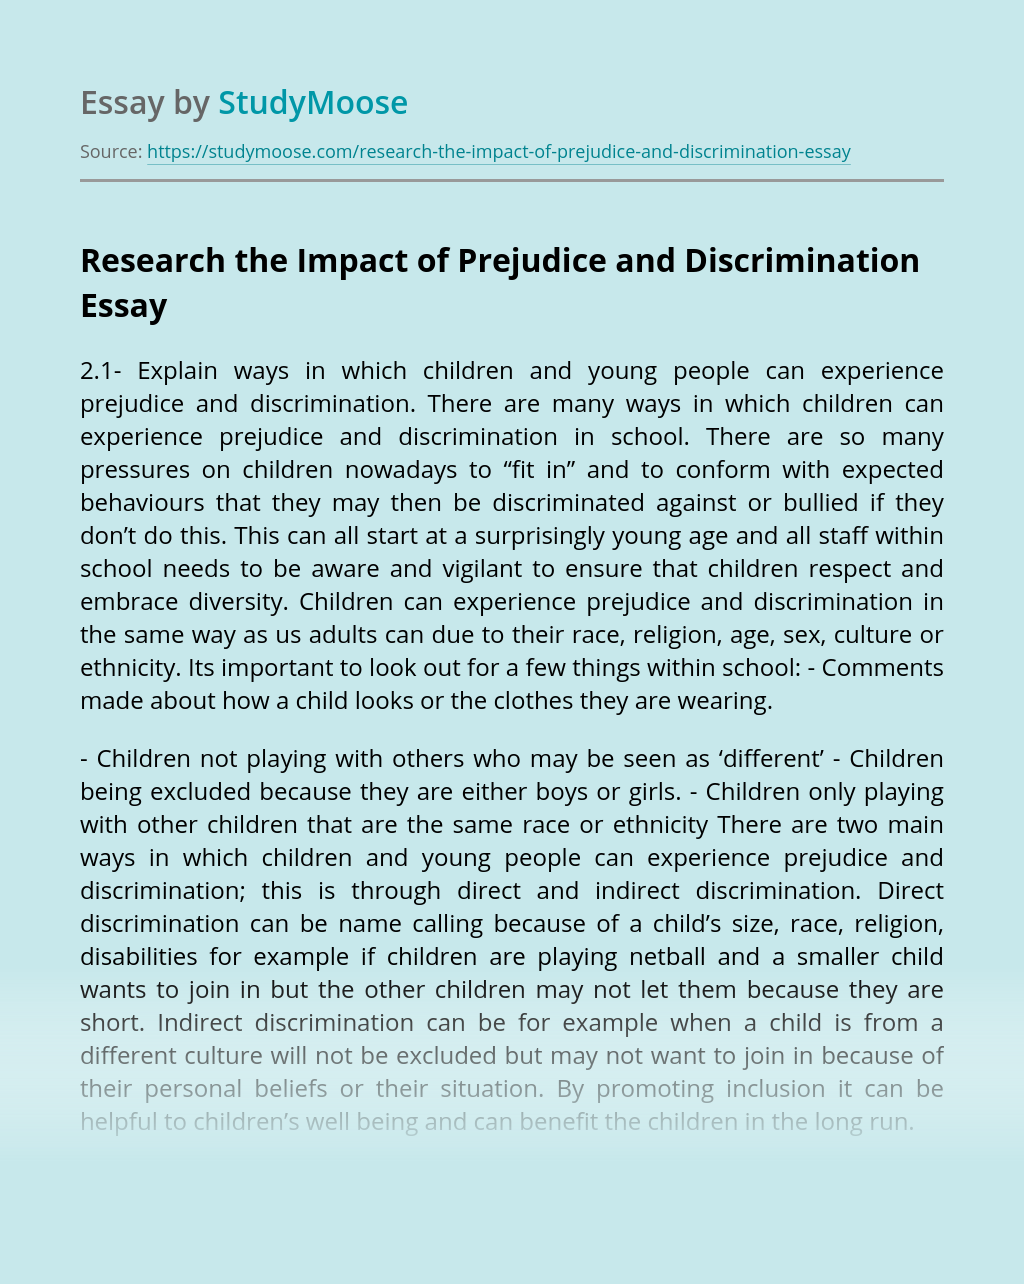 Research the Impact of Prejudice and Discrimination